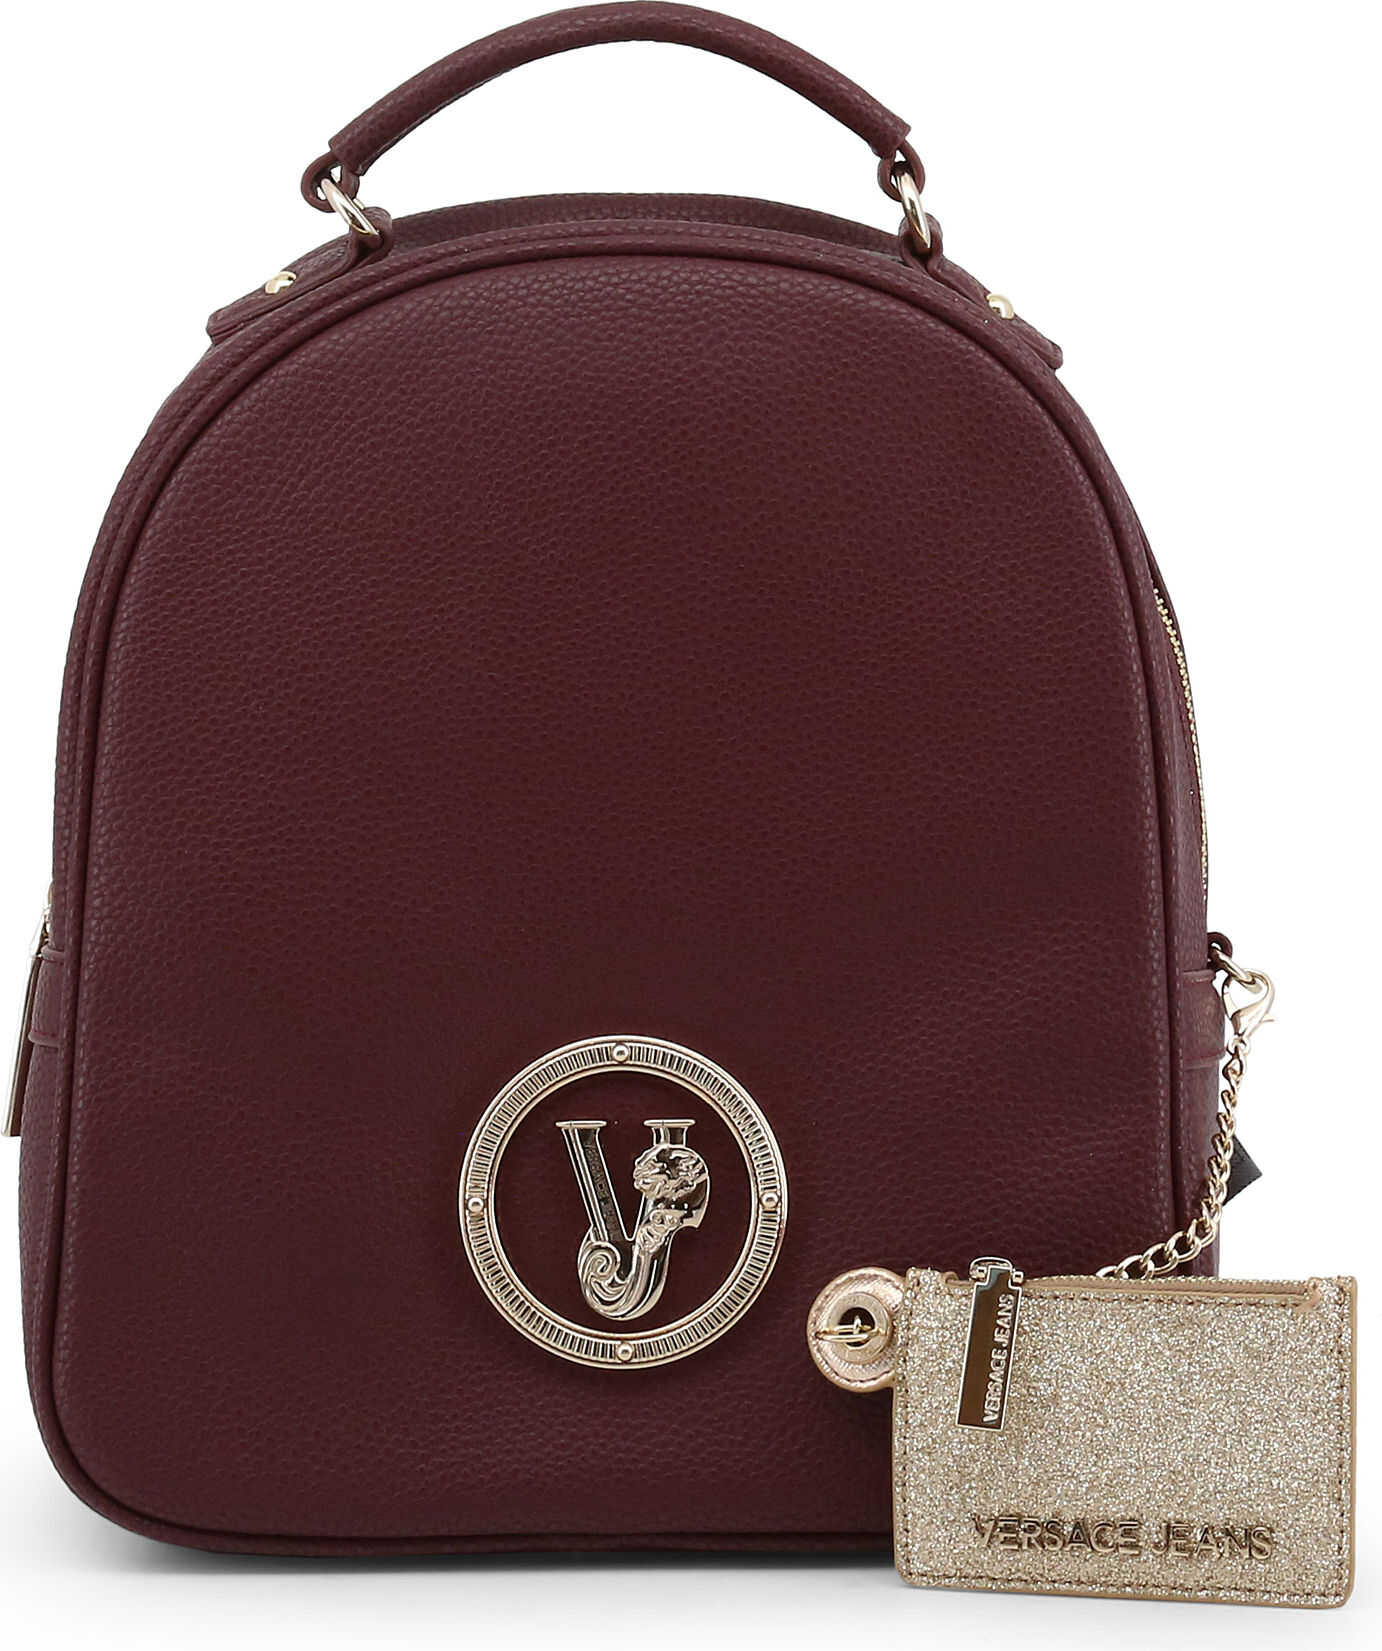 Versace Jeans E1Vsbbv3_70790 RED